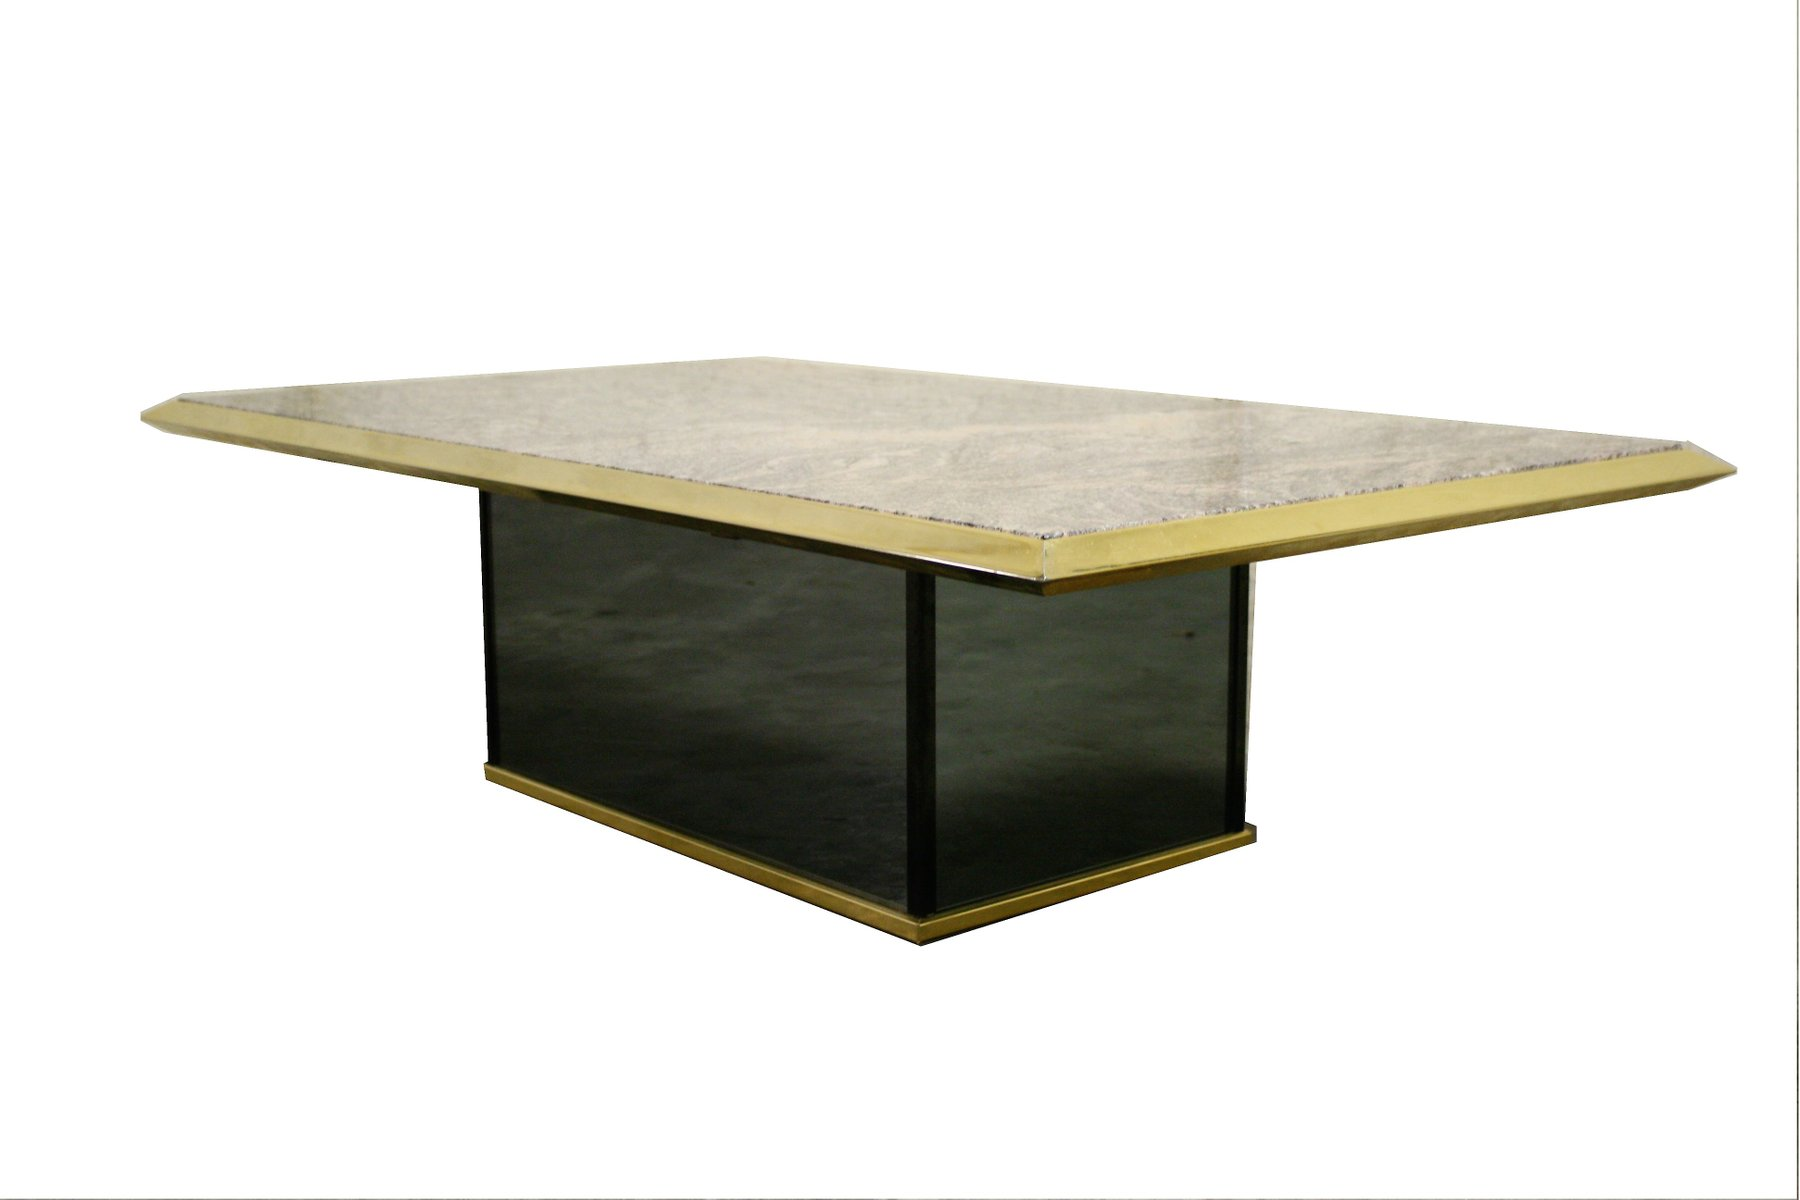 Hollywood Regency Brass And Marble Coffee Table, 1970s